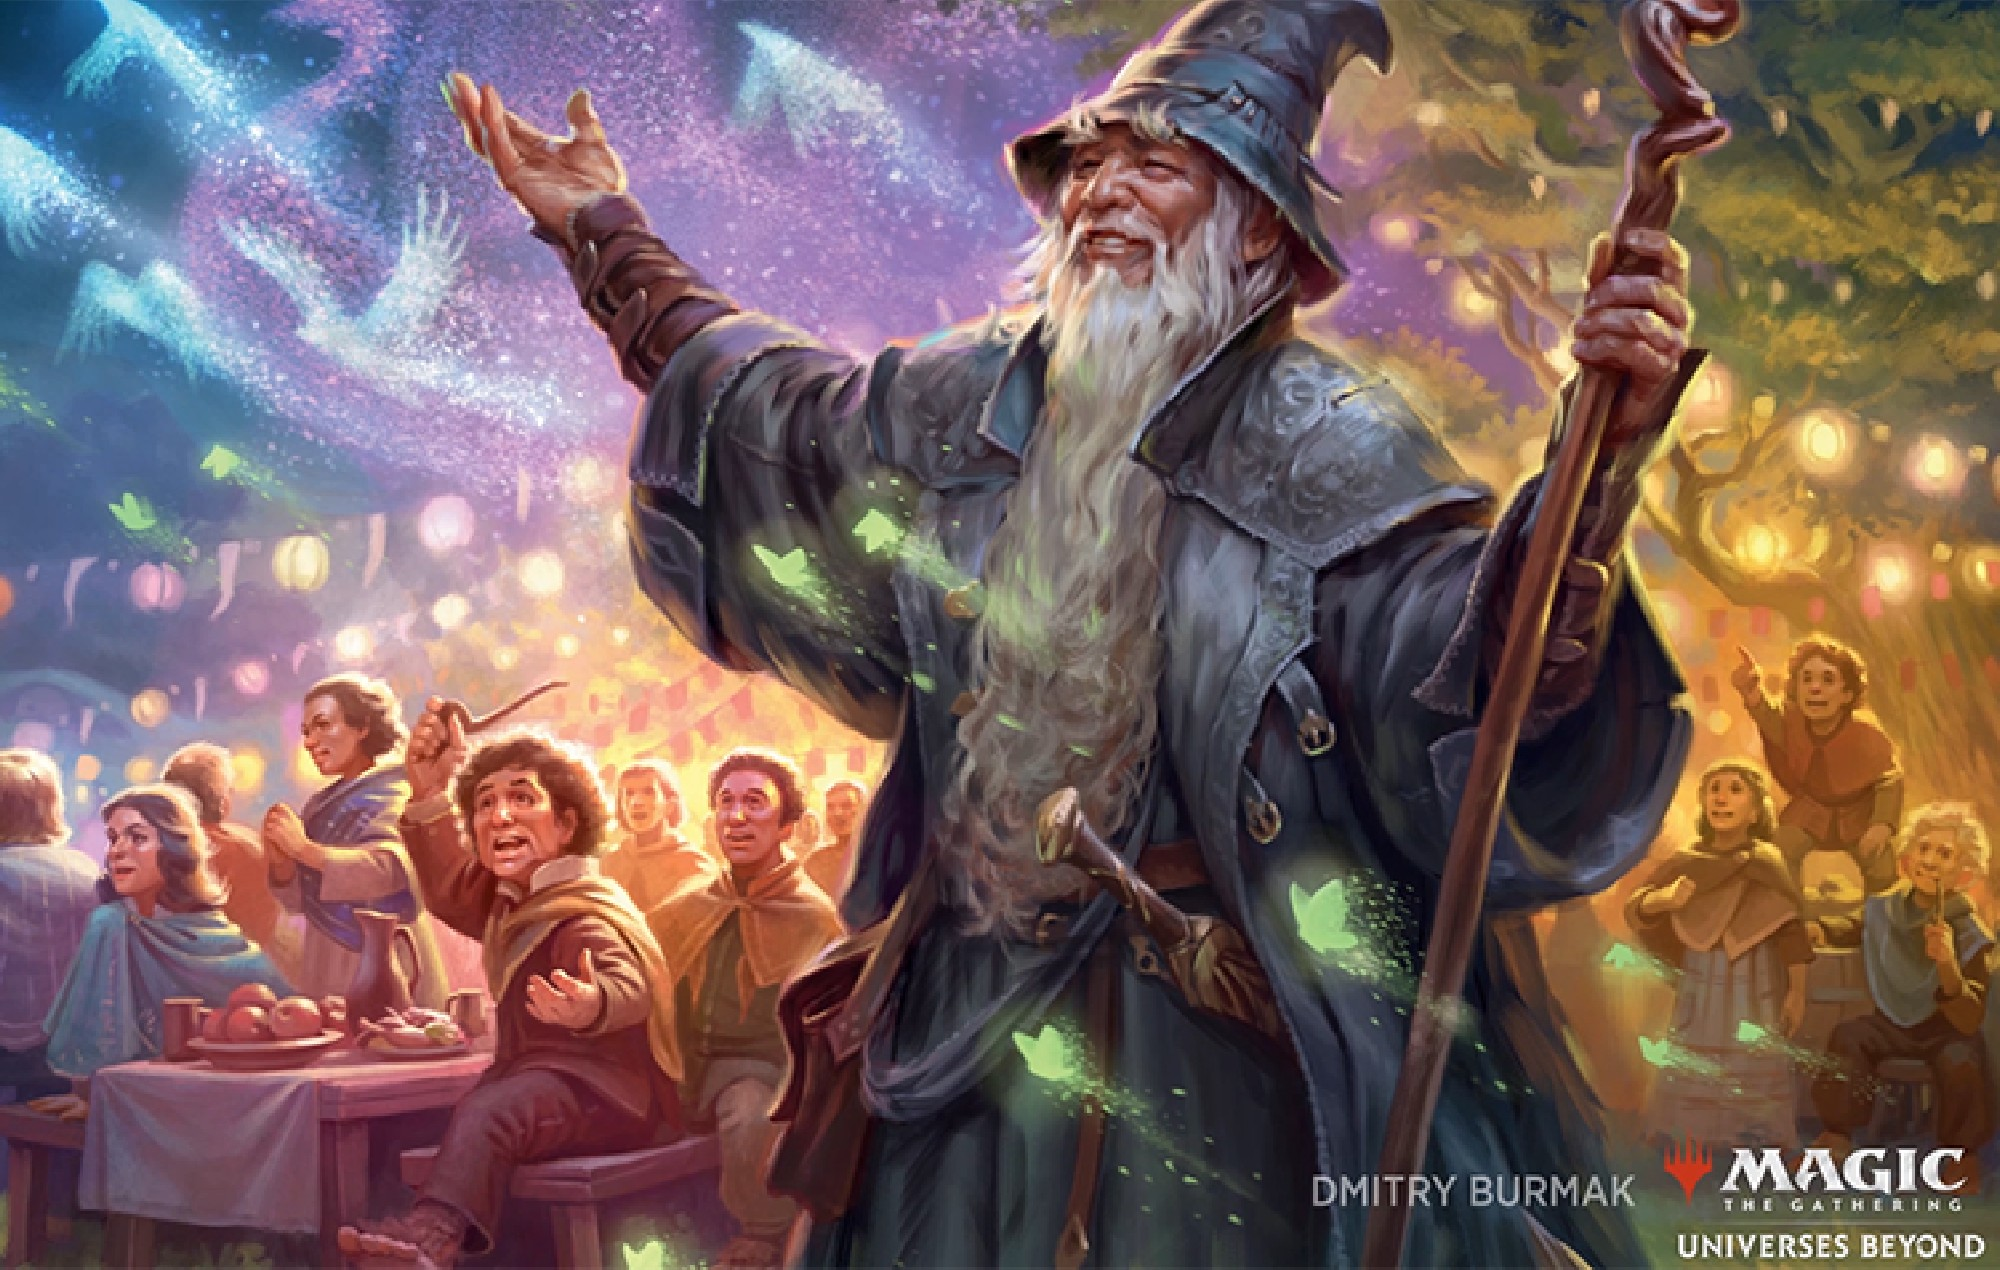 Lord Of The Rings in Magic: The Gathering